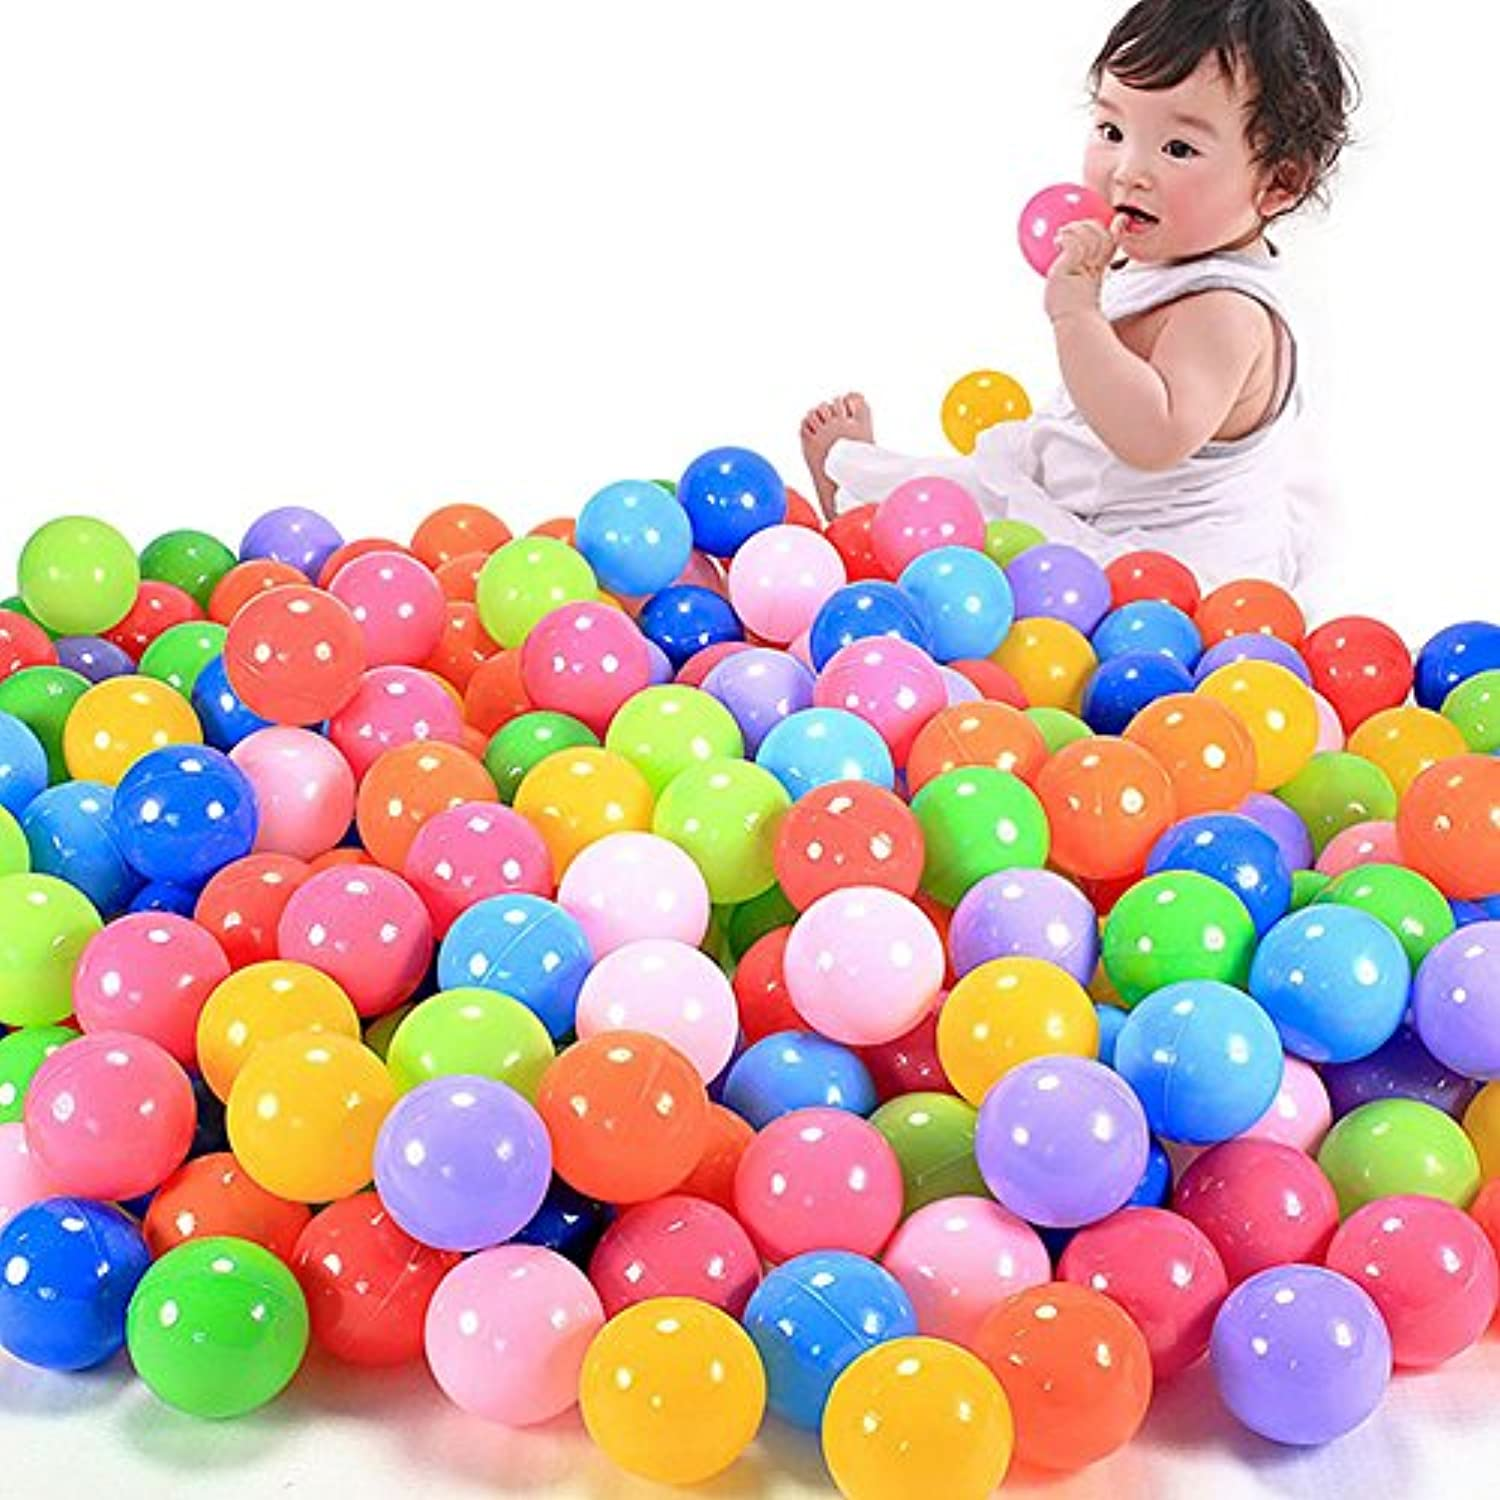 NNDA CO 5.6cm 200pcs Colourful Fun Ball Soft Plastic Ocean Ball Baby Kid Toy Swim Pit Toy